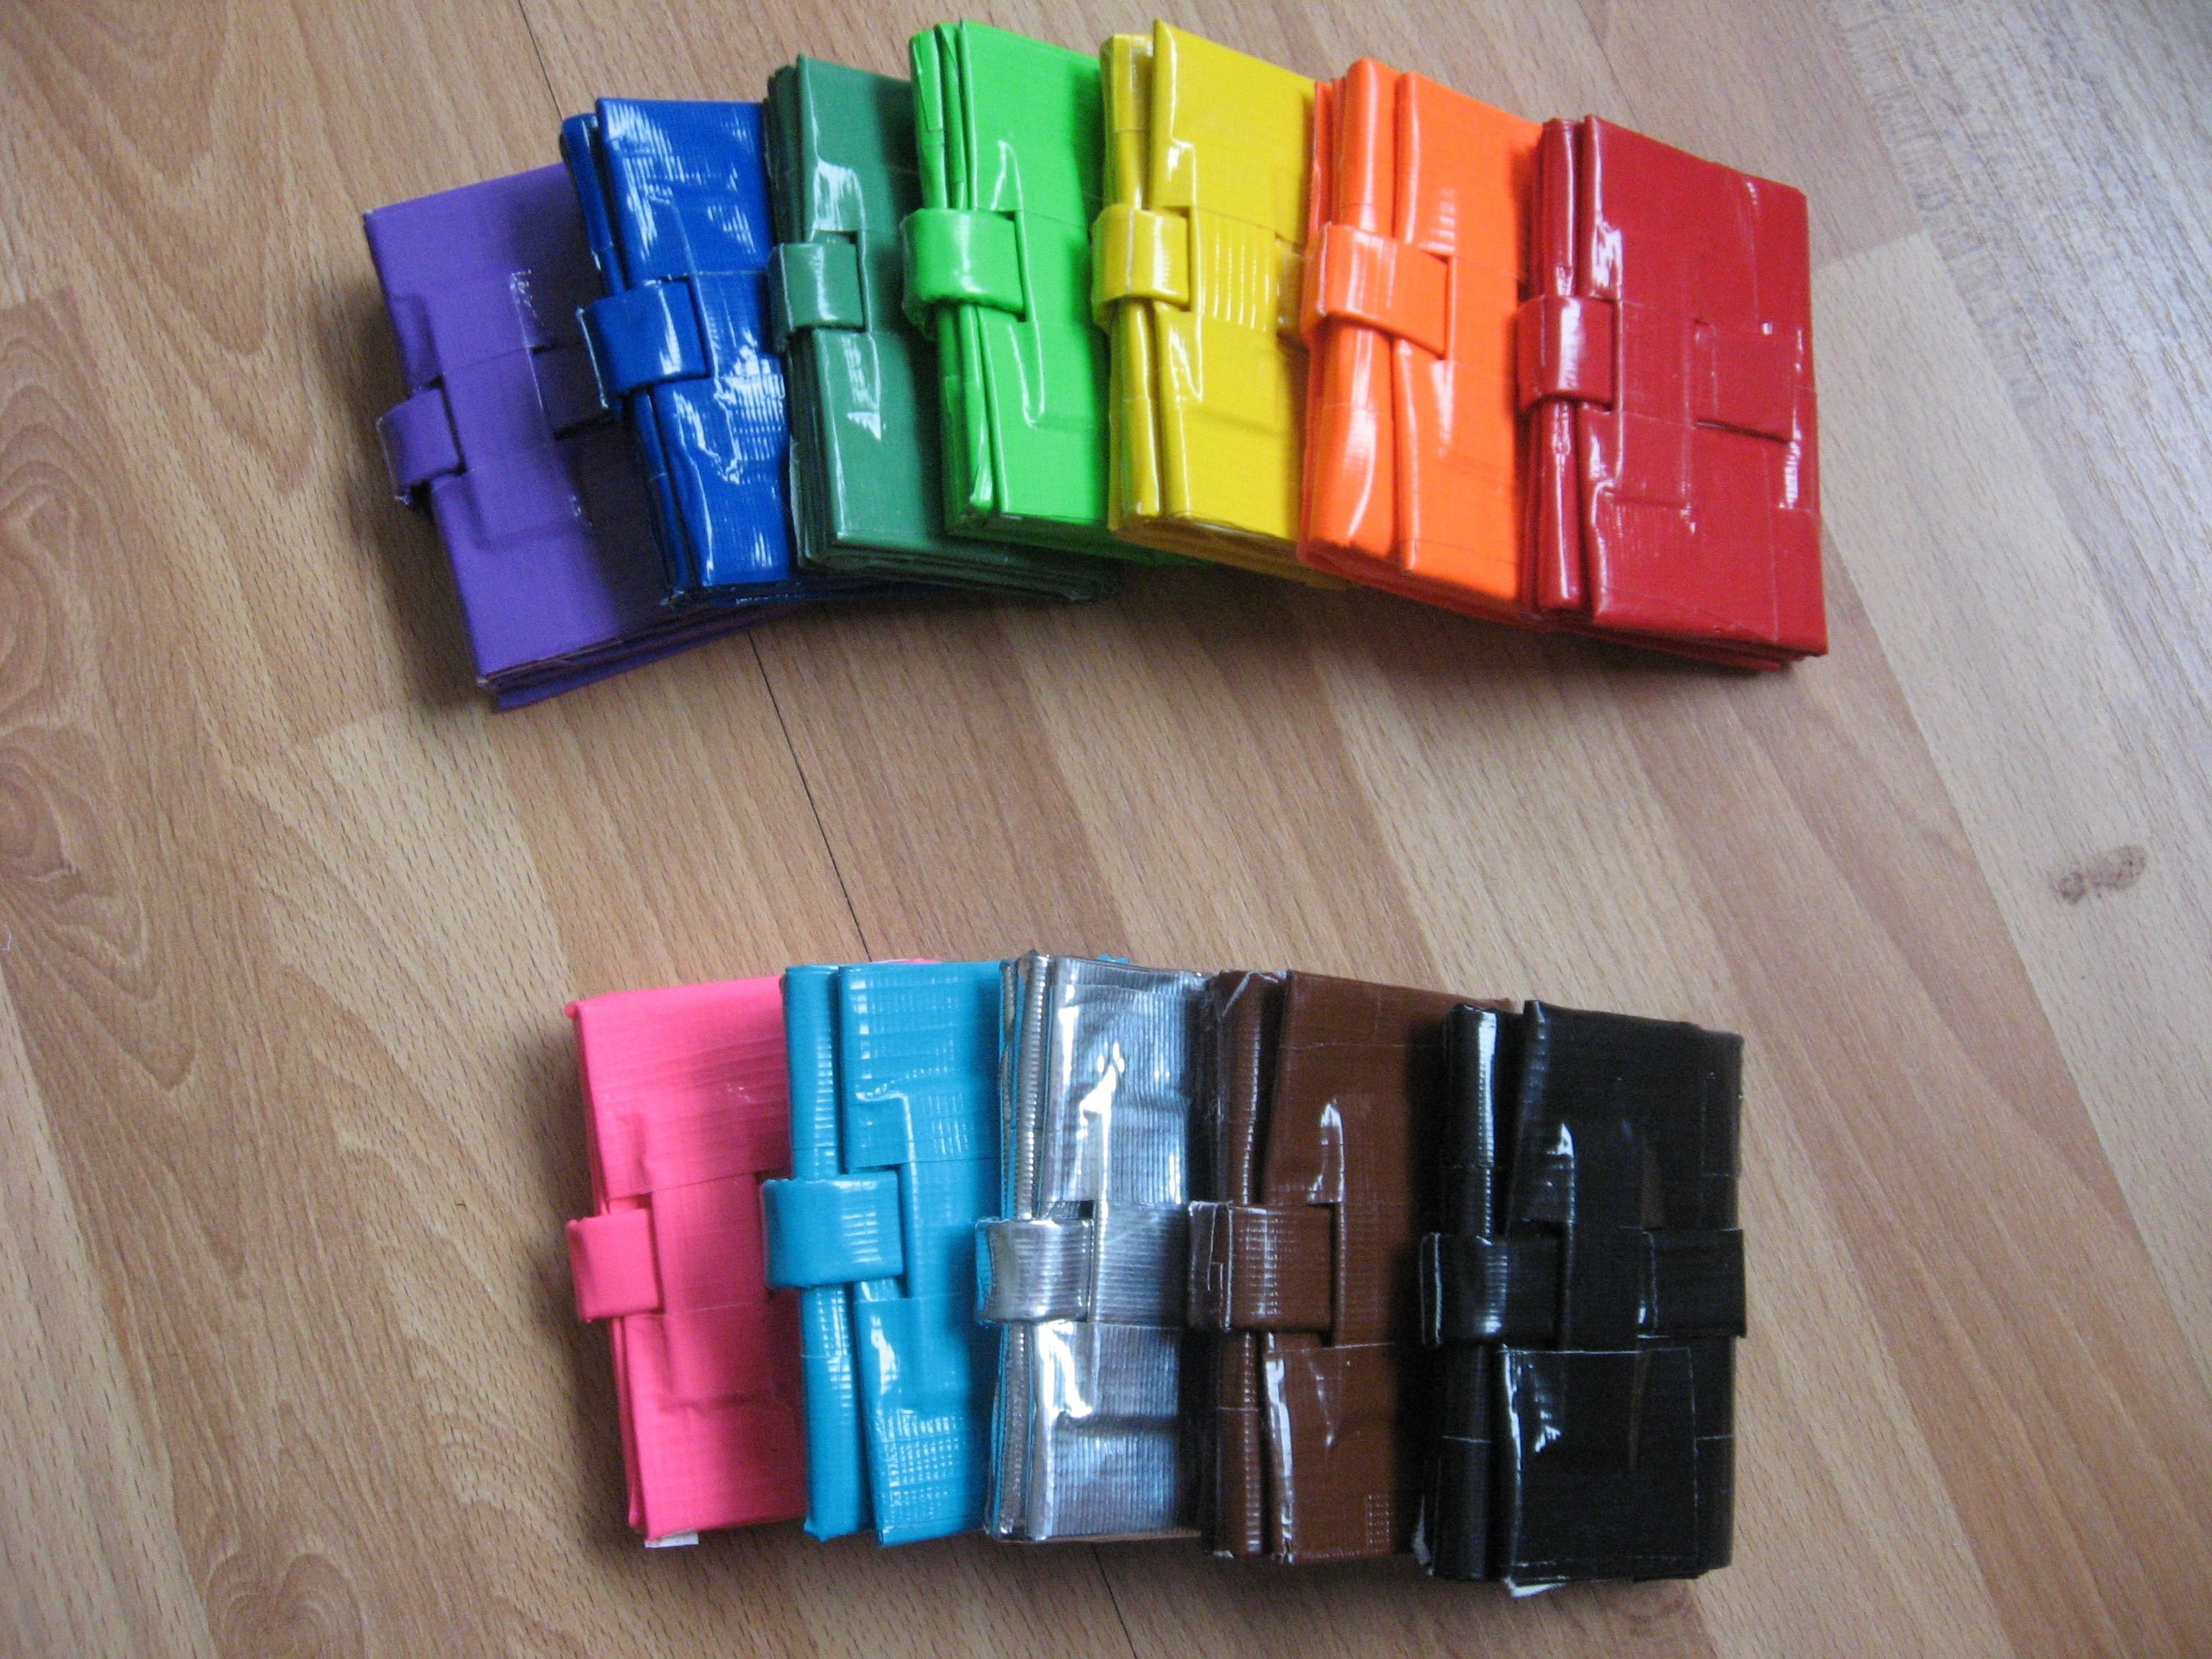 10 Attractive Duct Tape Ideas For Boys duct tape wallet designs ideas duct tape crafts e299a5tape 1 2021